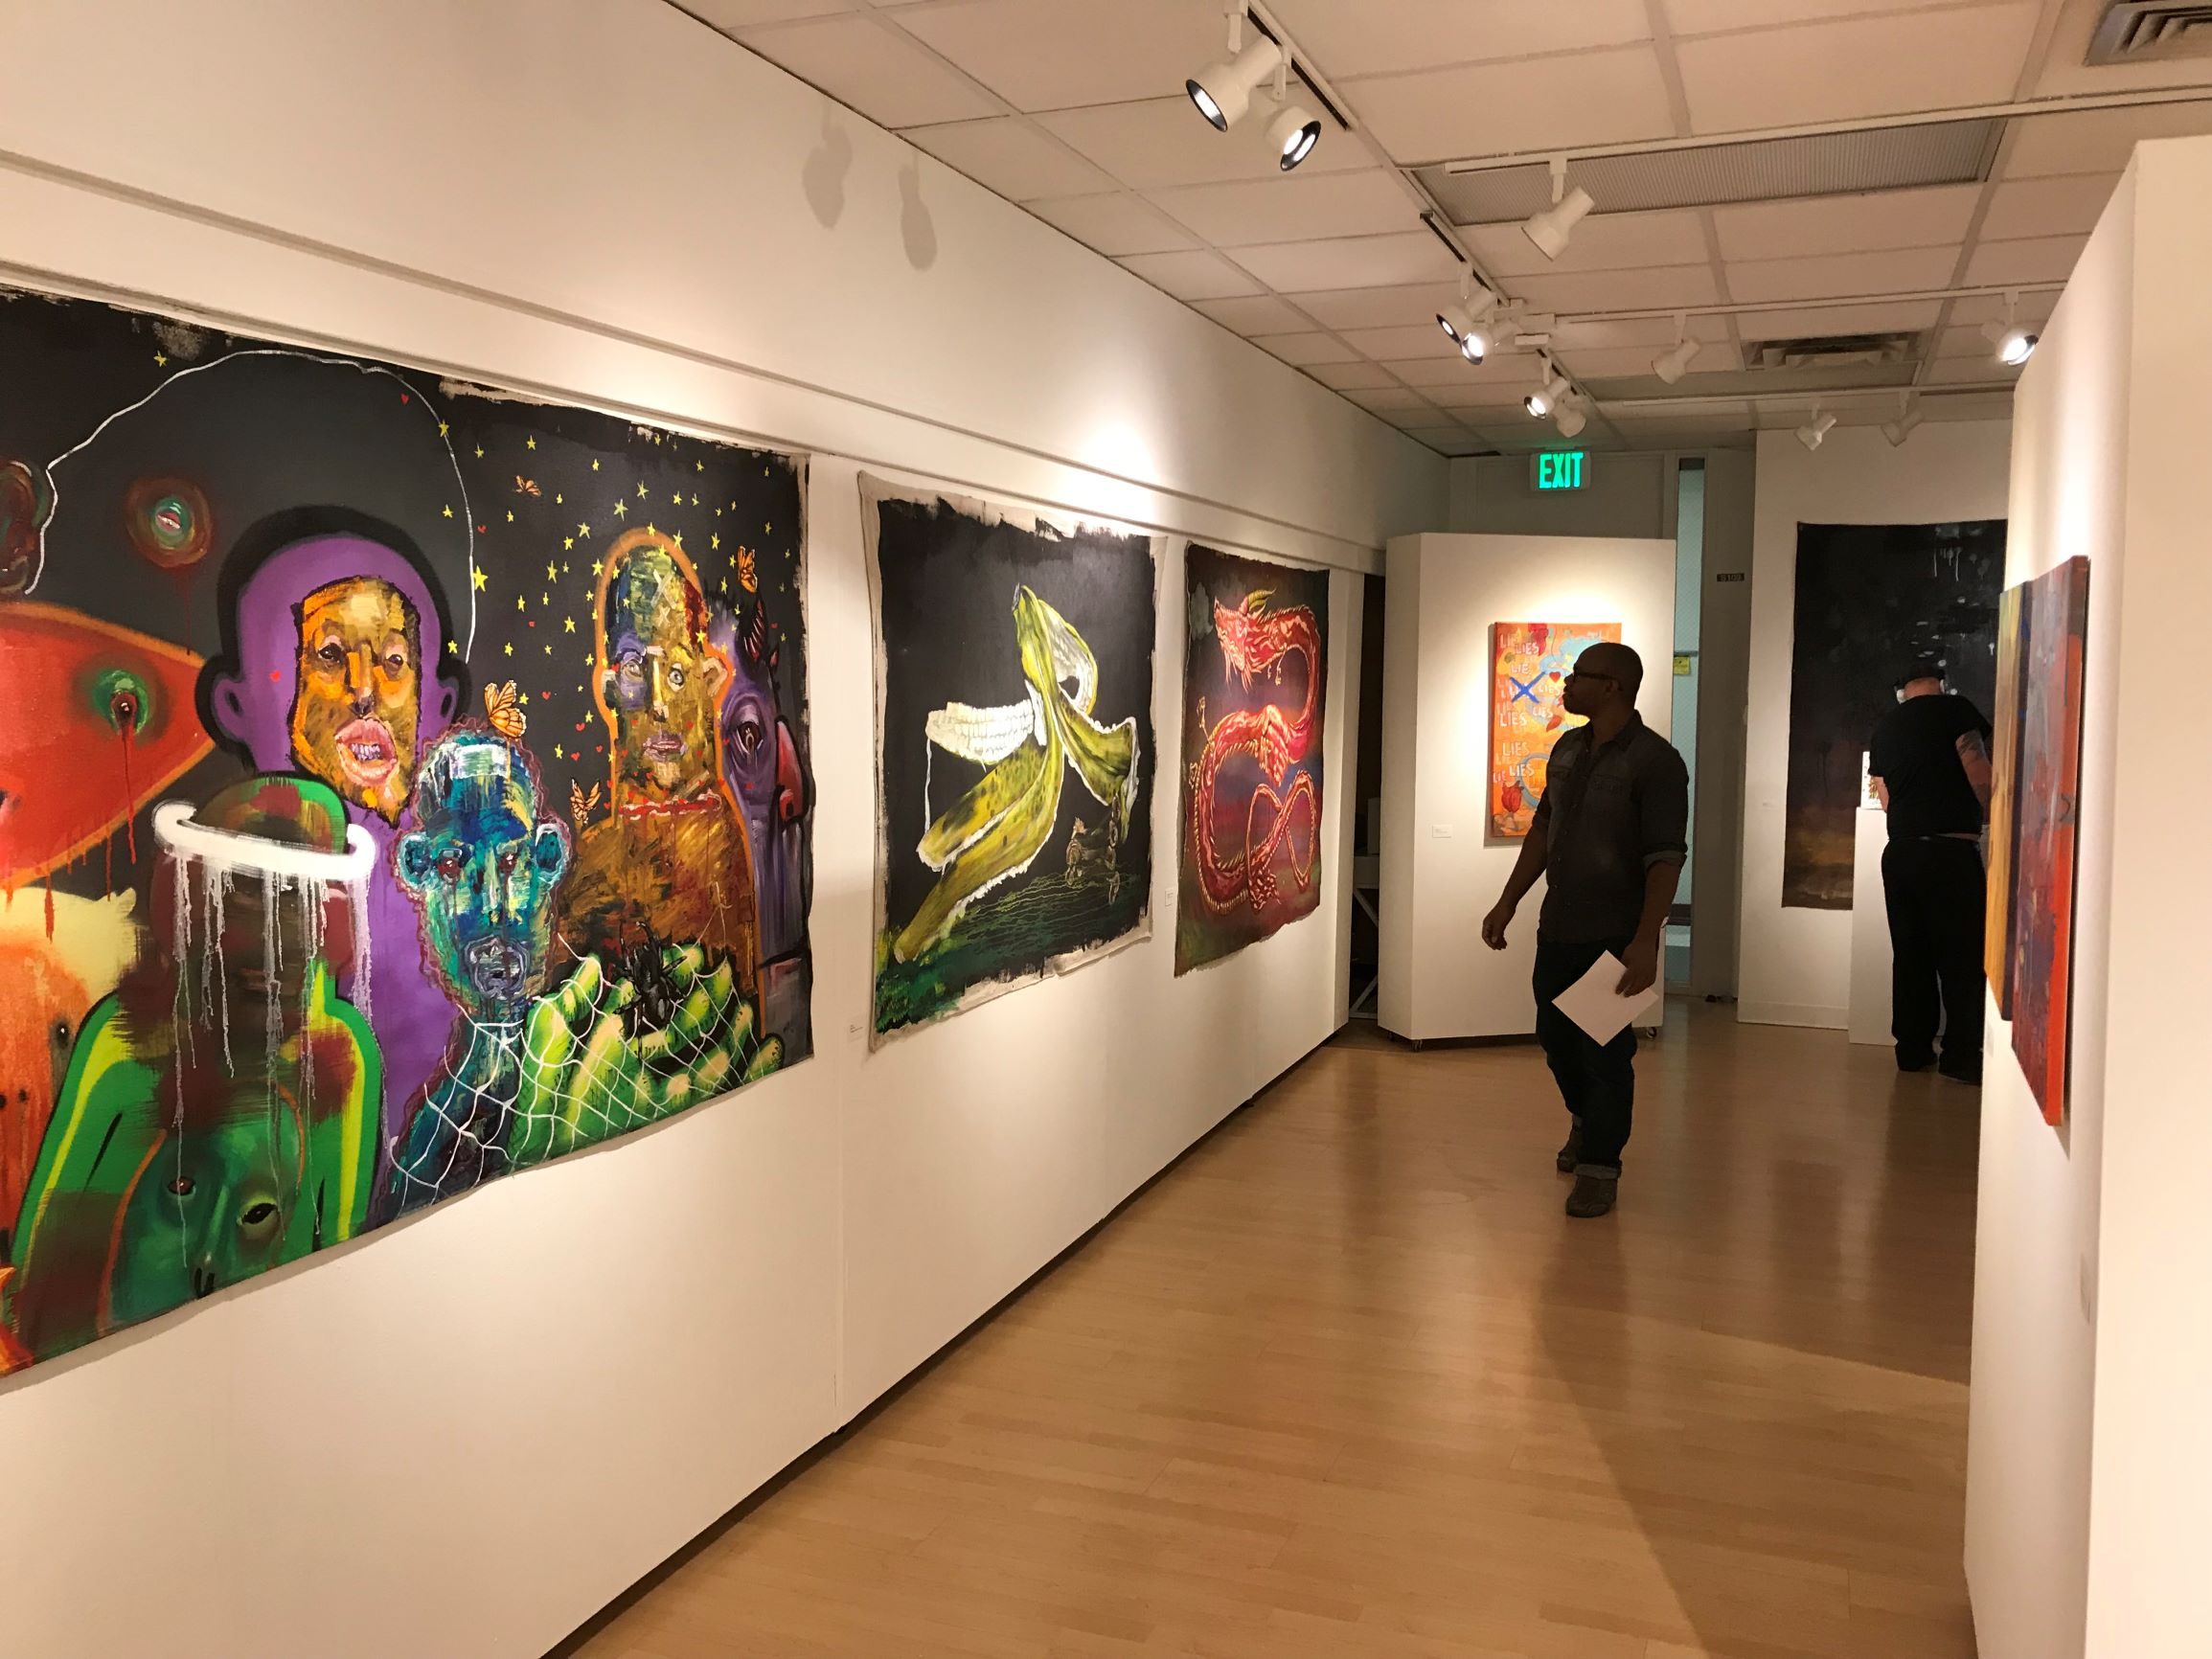 Preview of gallery featuring many paintings